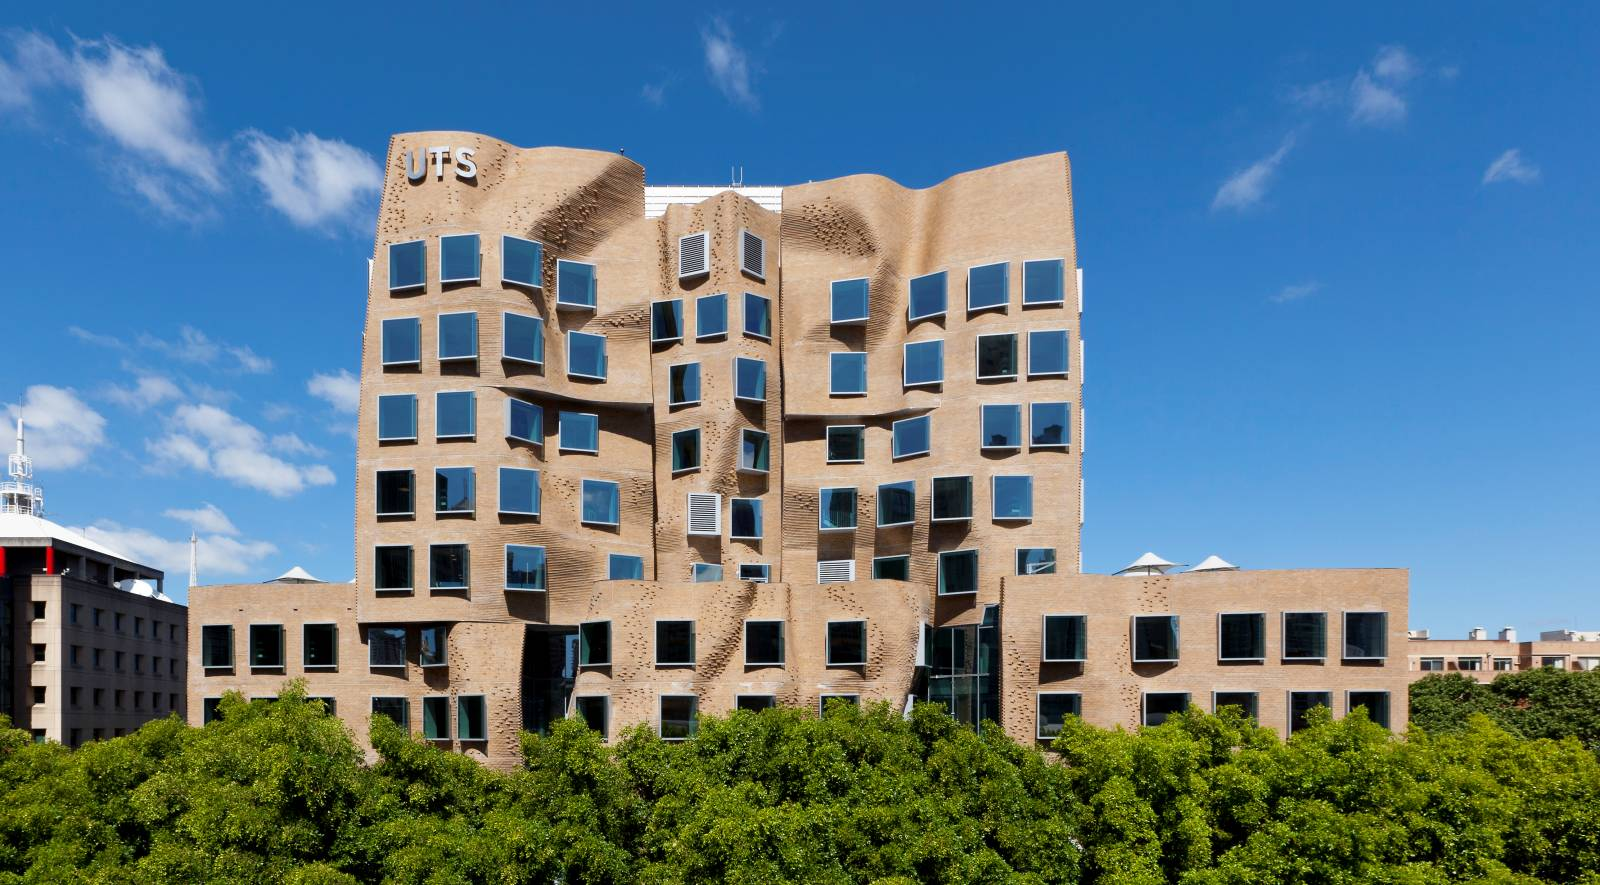 UTS Business School's Frank Gehry building